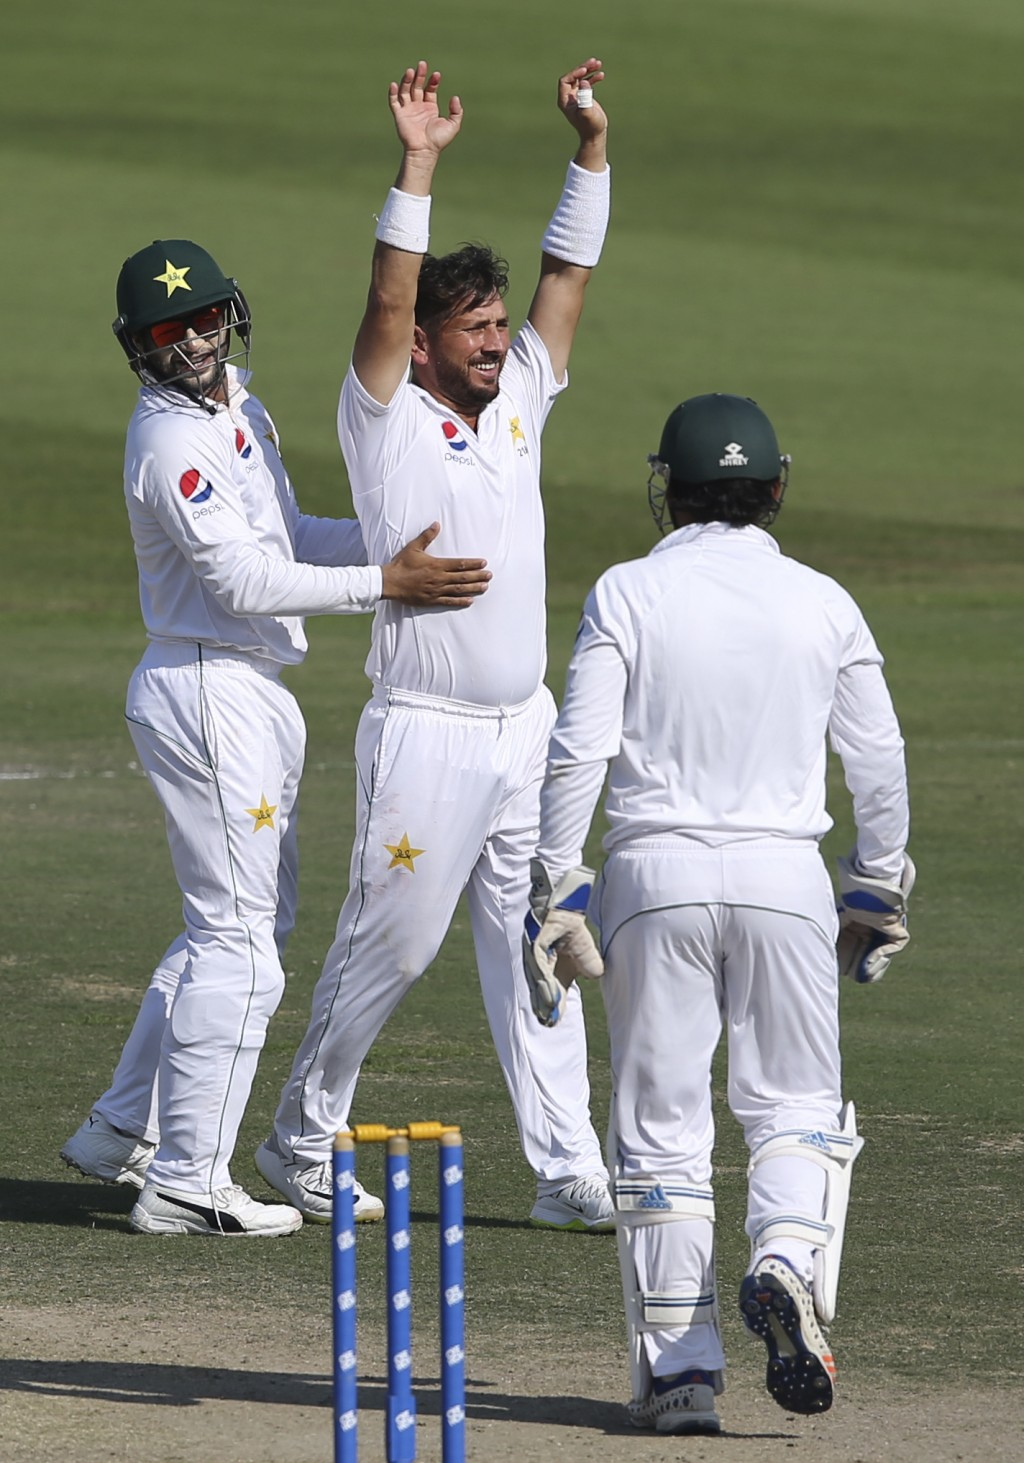 Pakistan's Yasir Shah celebrates dismissal of New Zealand's Will Sumerville in their test match in Abu Dhabi, United Arab Emirates, Thursday, Dec. 6,